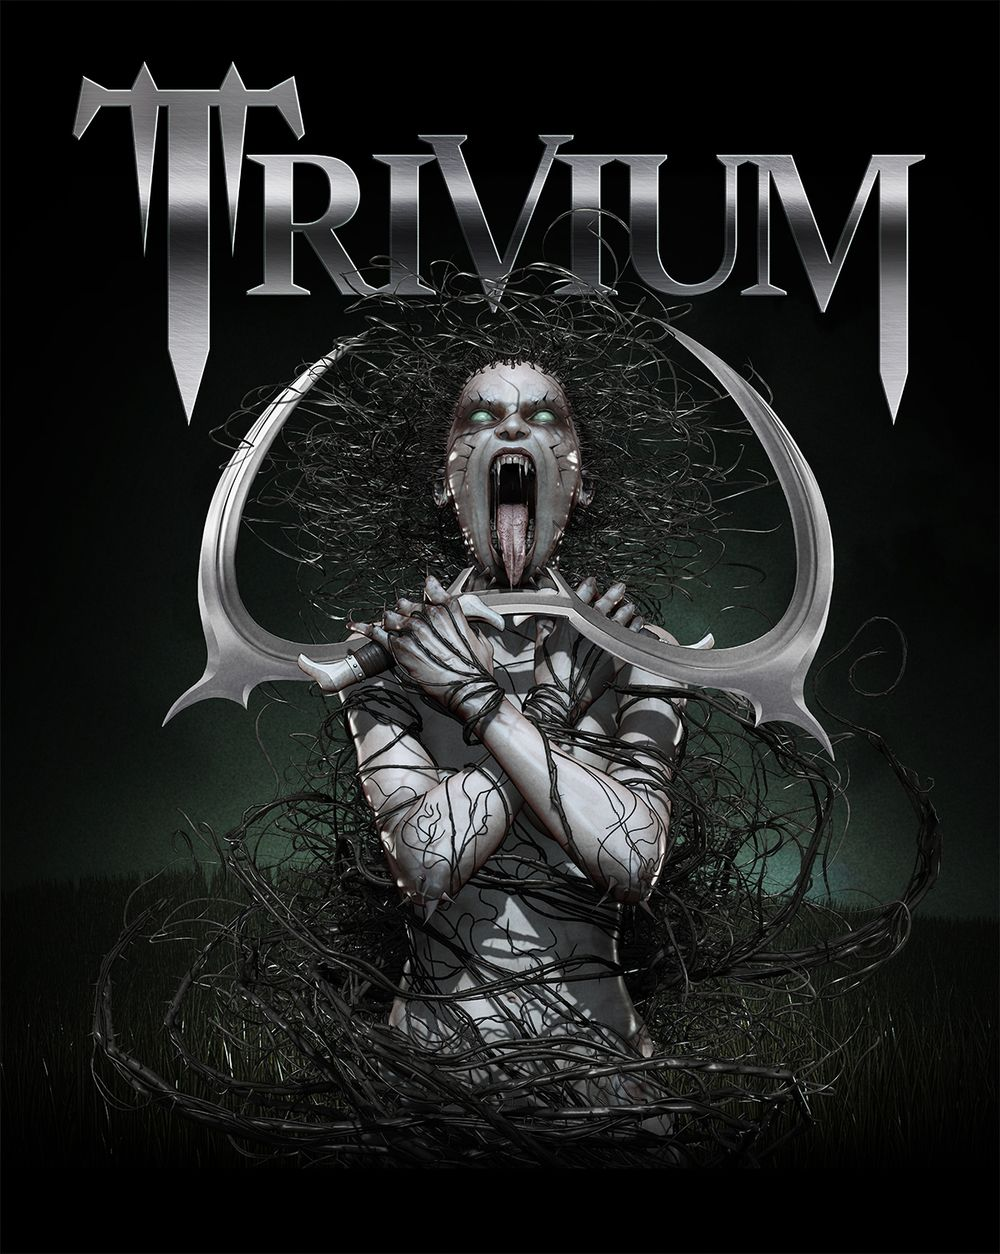 TriviumBriarWitch.jpg | Metal posters art, Rock band ...